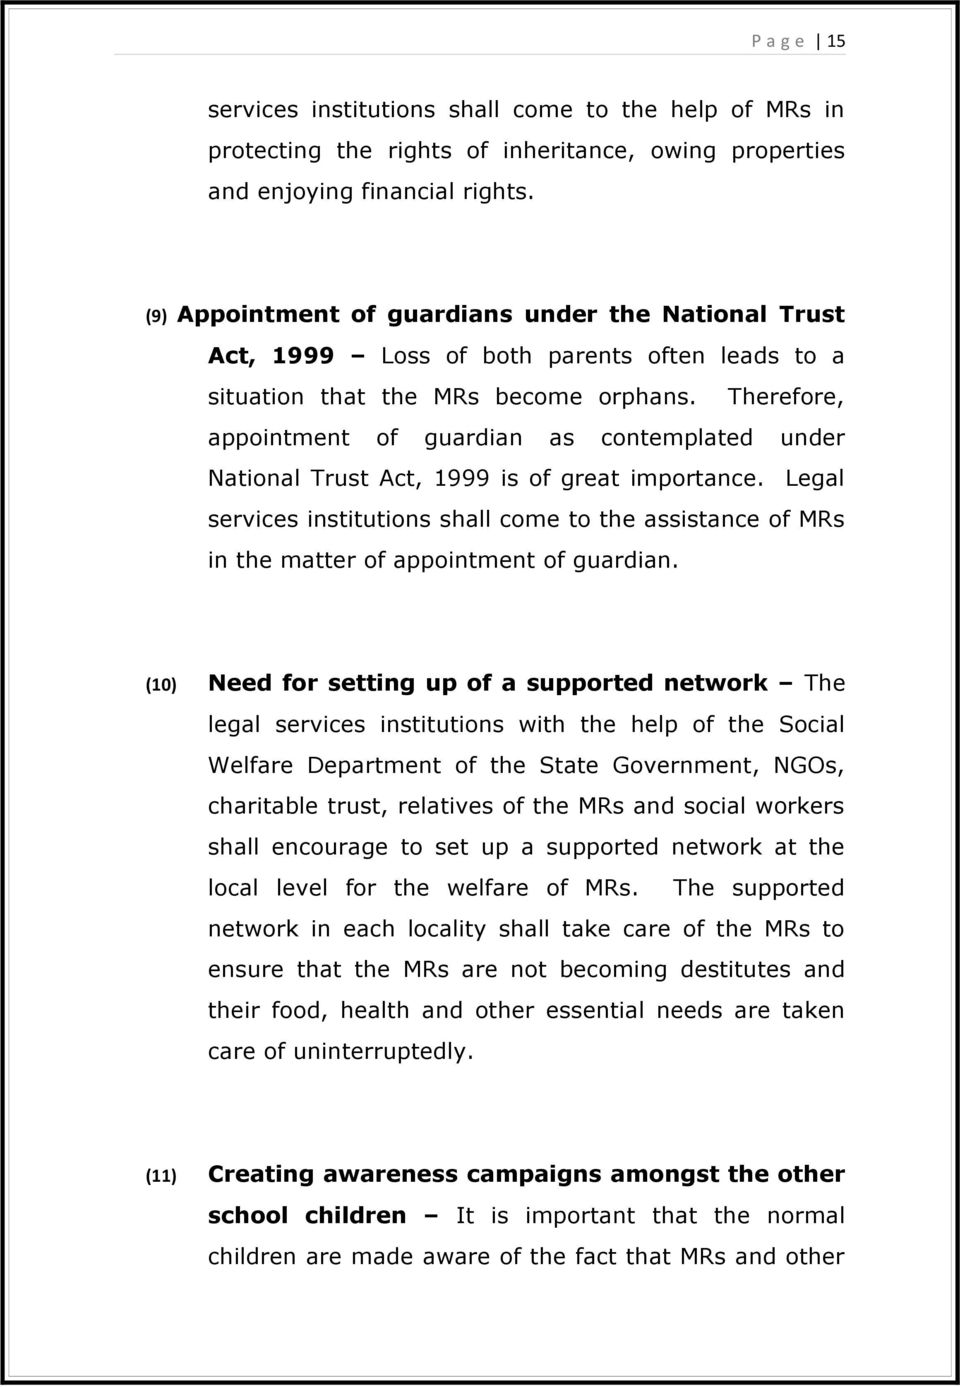 Therefore, appointment of guardian as contemplated under National Trust Act, 1999 is of great importance.